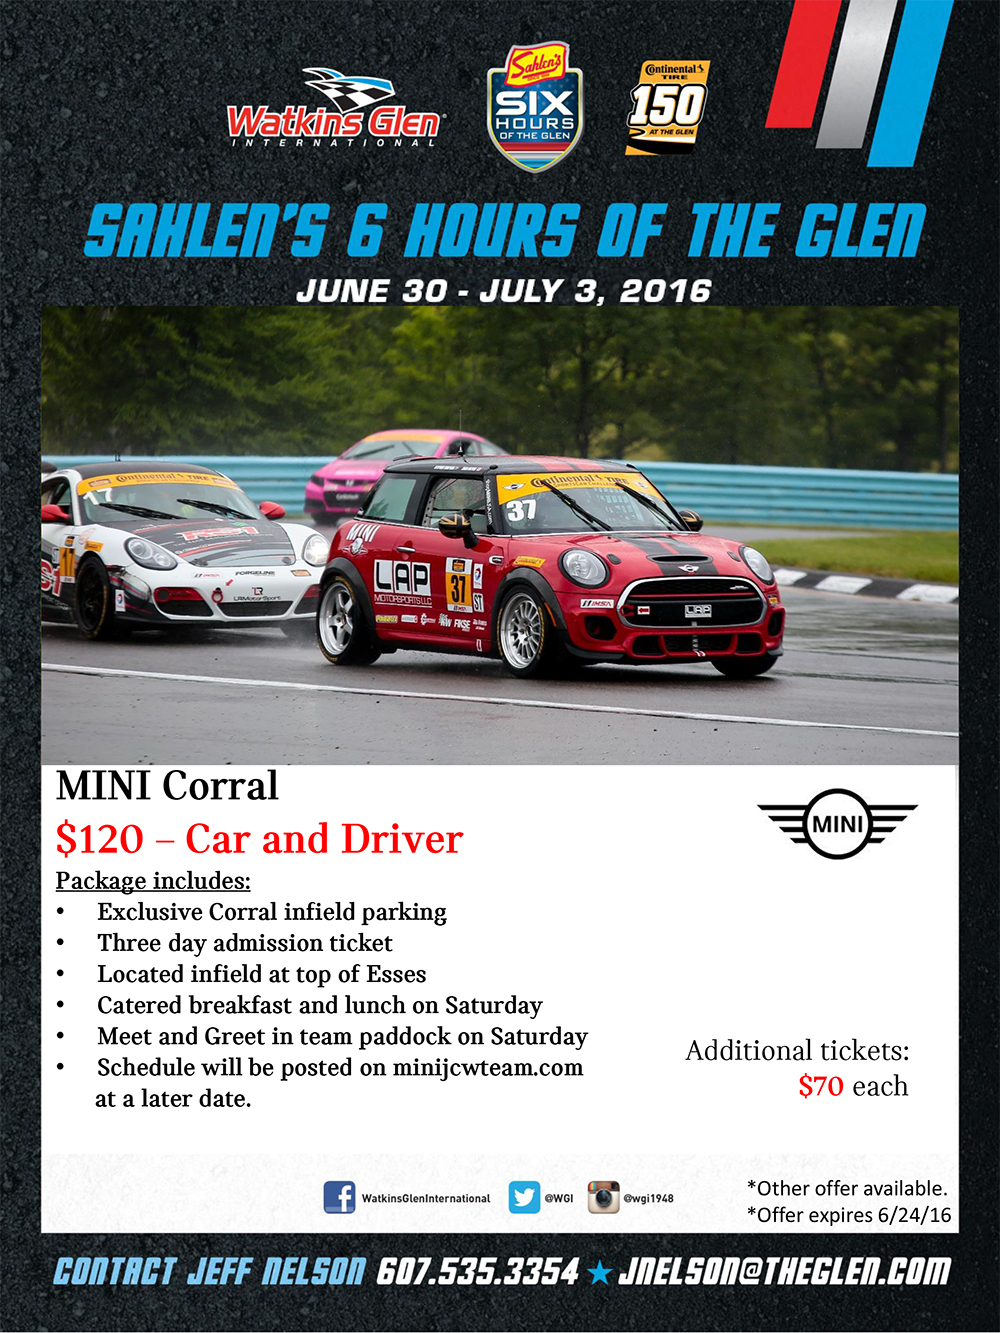 Watkins Glen MINI Corral Schedule